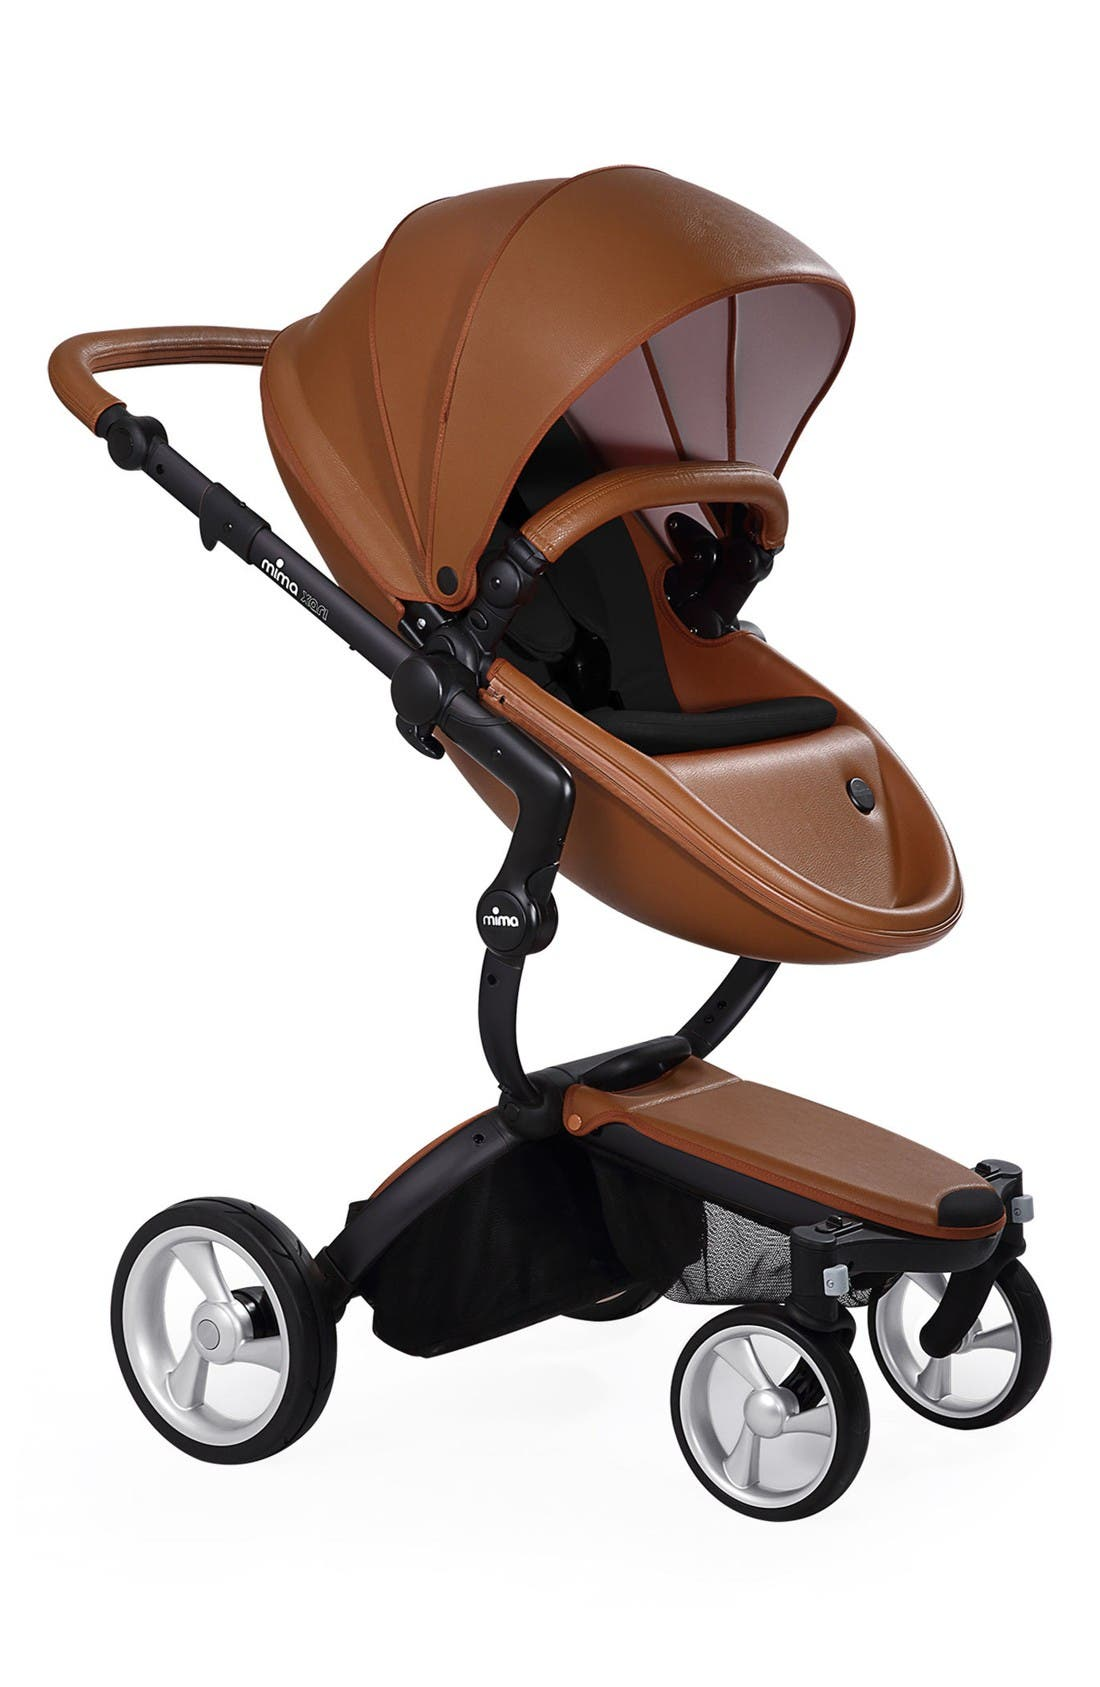 Mima Xari Black Chassis Stroller with Reversible Reclining Seat & Carrycot